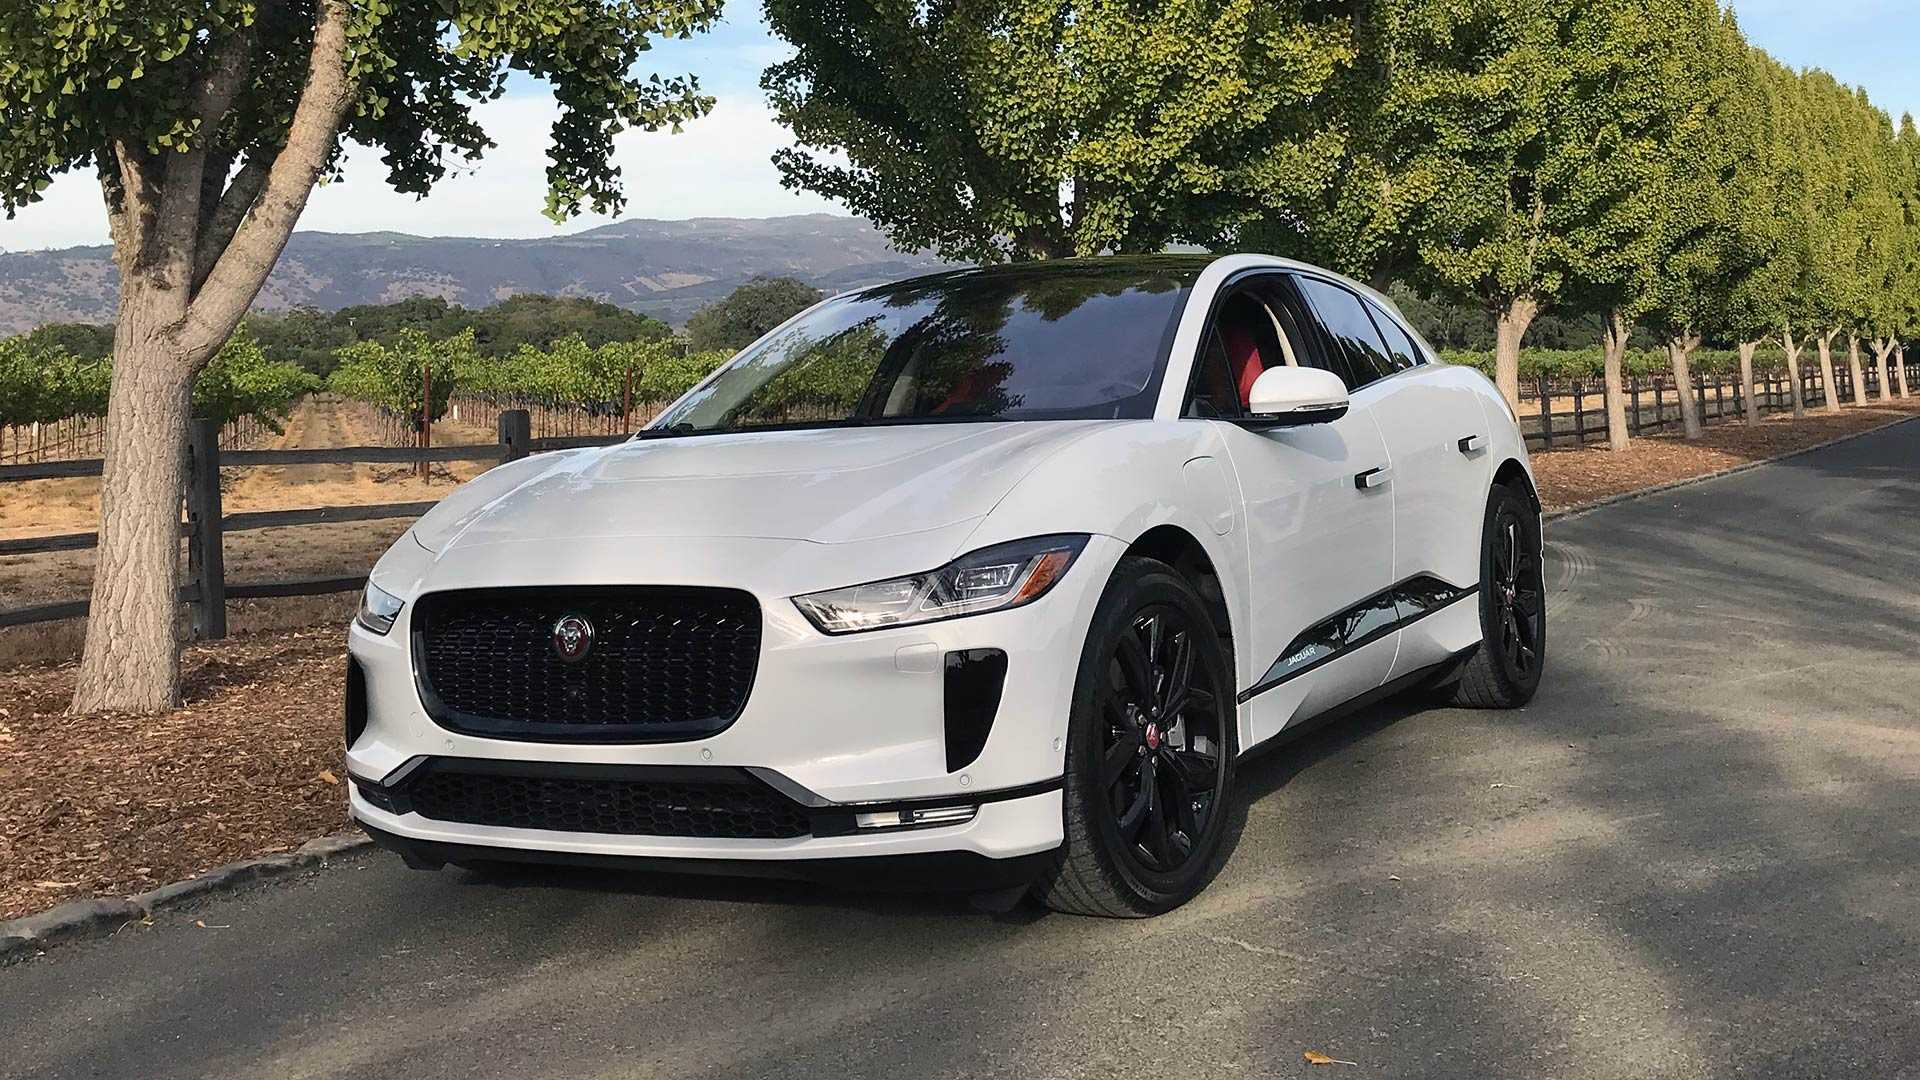 Jaguar Says That EV Battery Size Has Peaked and Will Begin